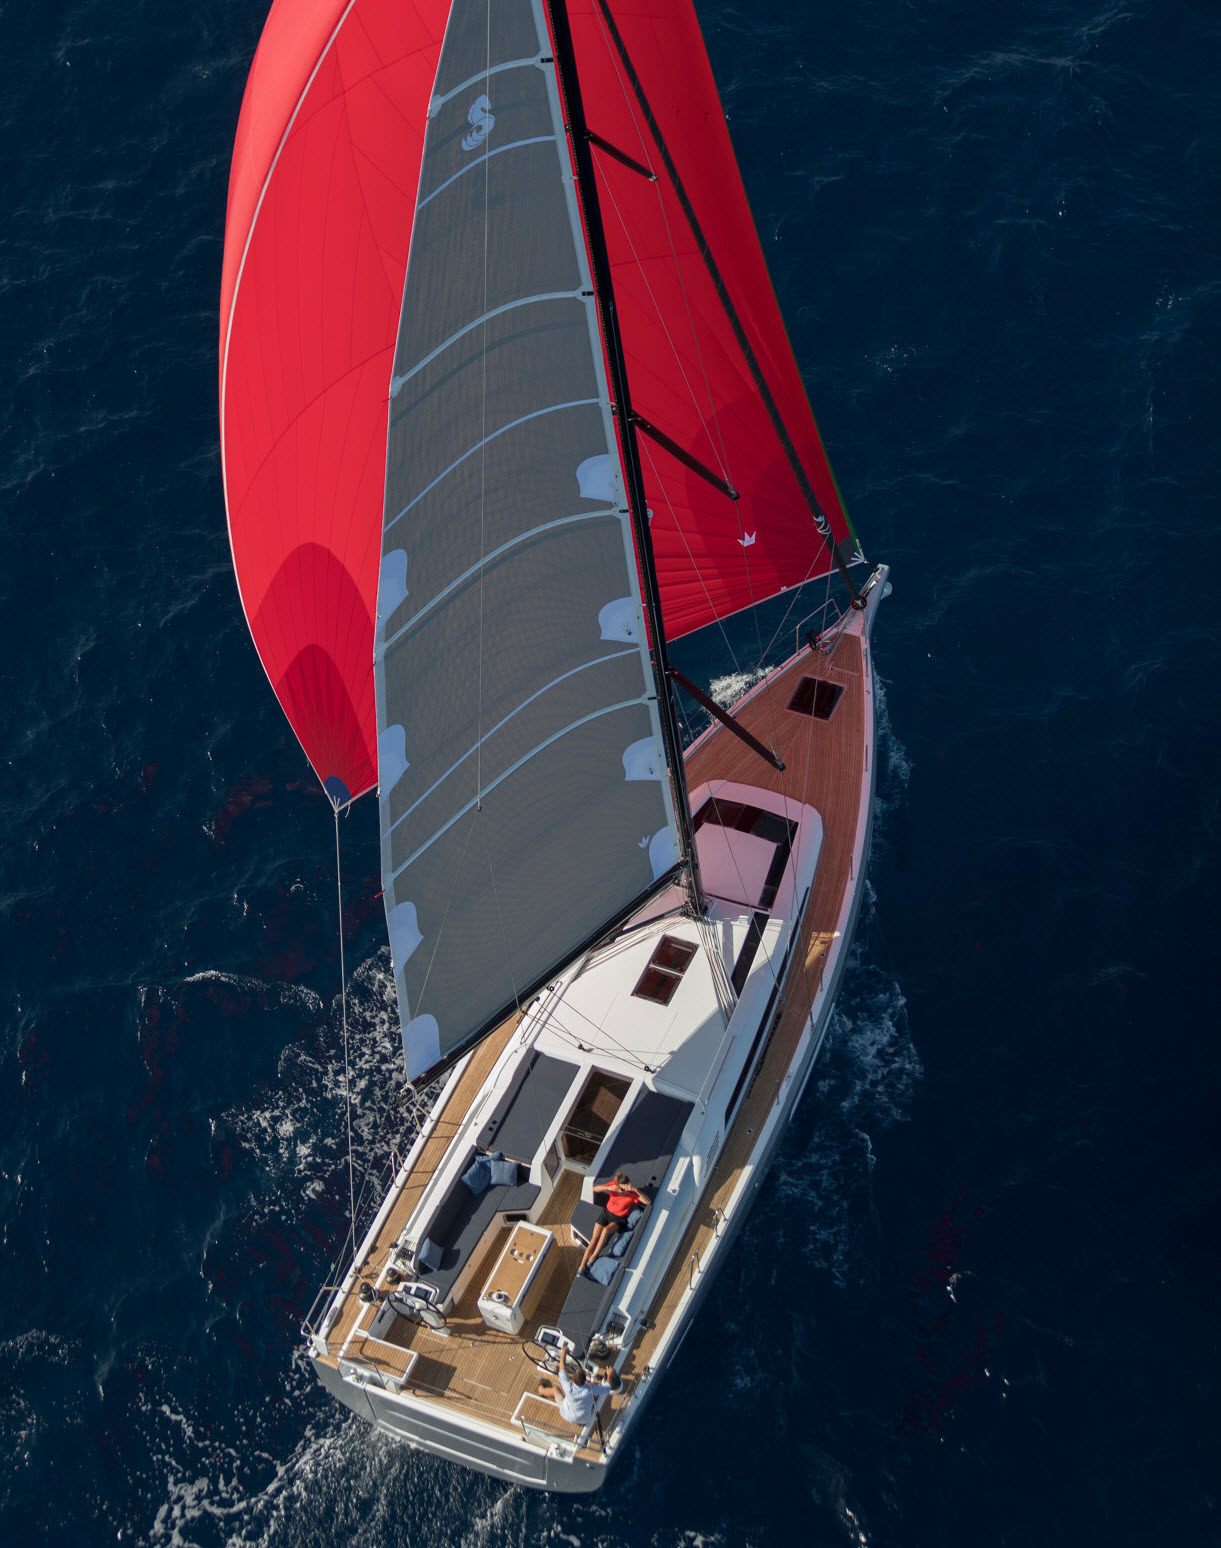 Beneteau Oceanis 51.1 wins Yacht of the Year in Italy